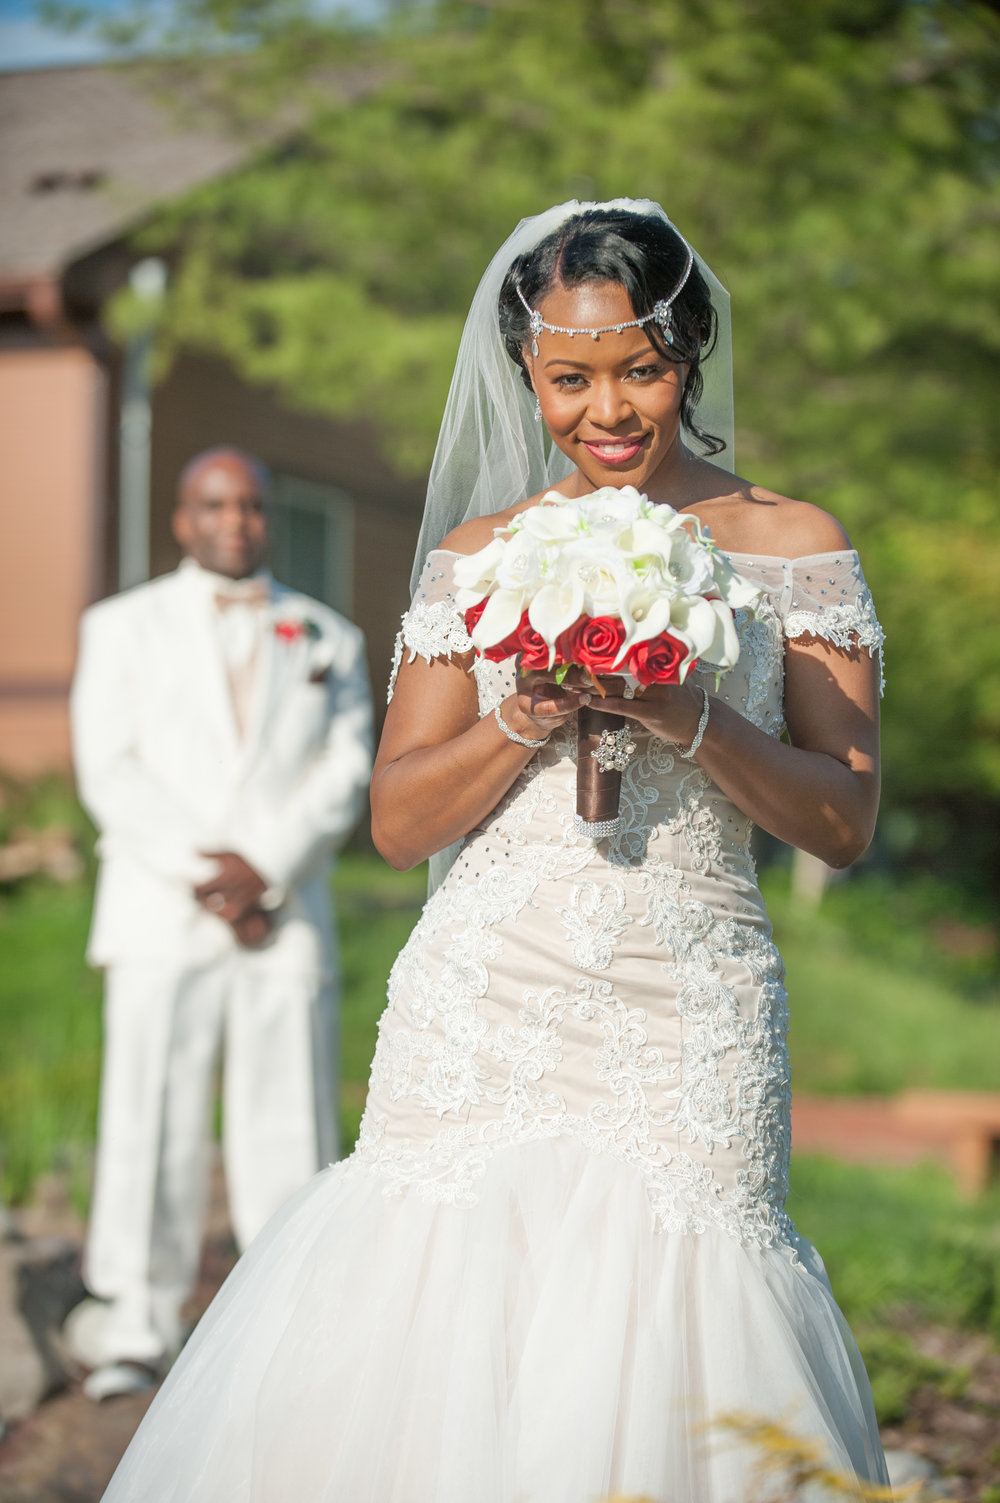 Bride with Bouquet Smiles with Groom in Background